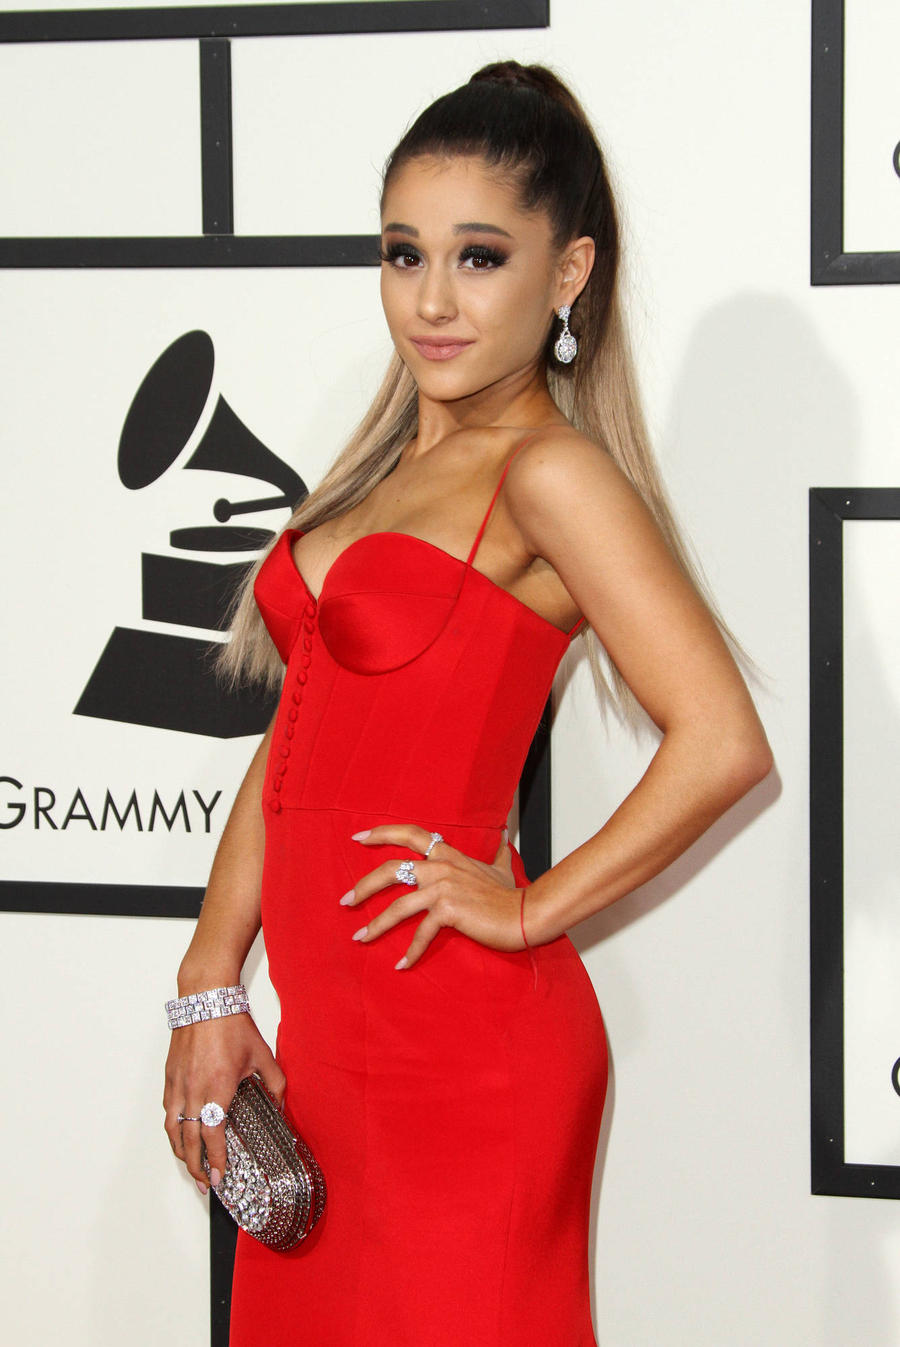 Ariana Grande Fires Back At Sexist Fan